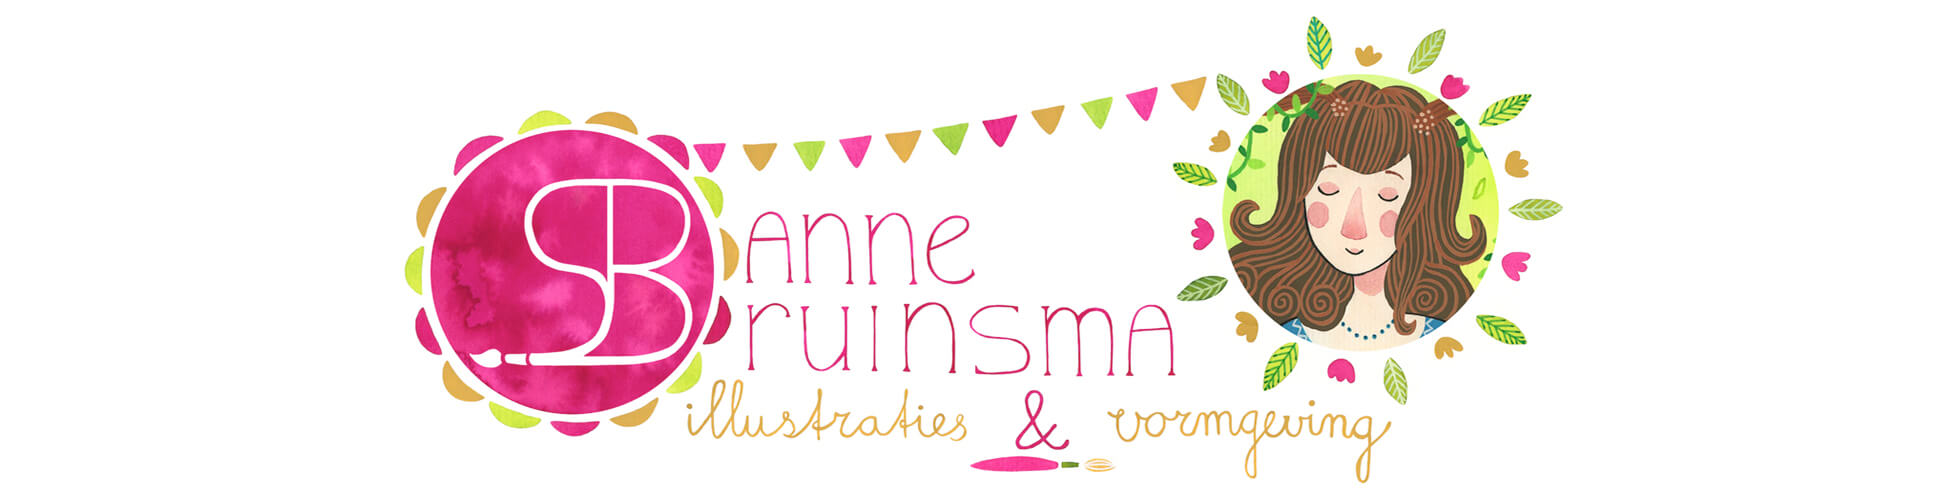 Sanne Bruinsma Illustraties & Vormgeving illustratie banner website